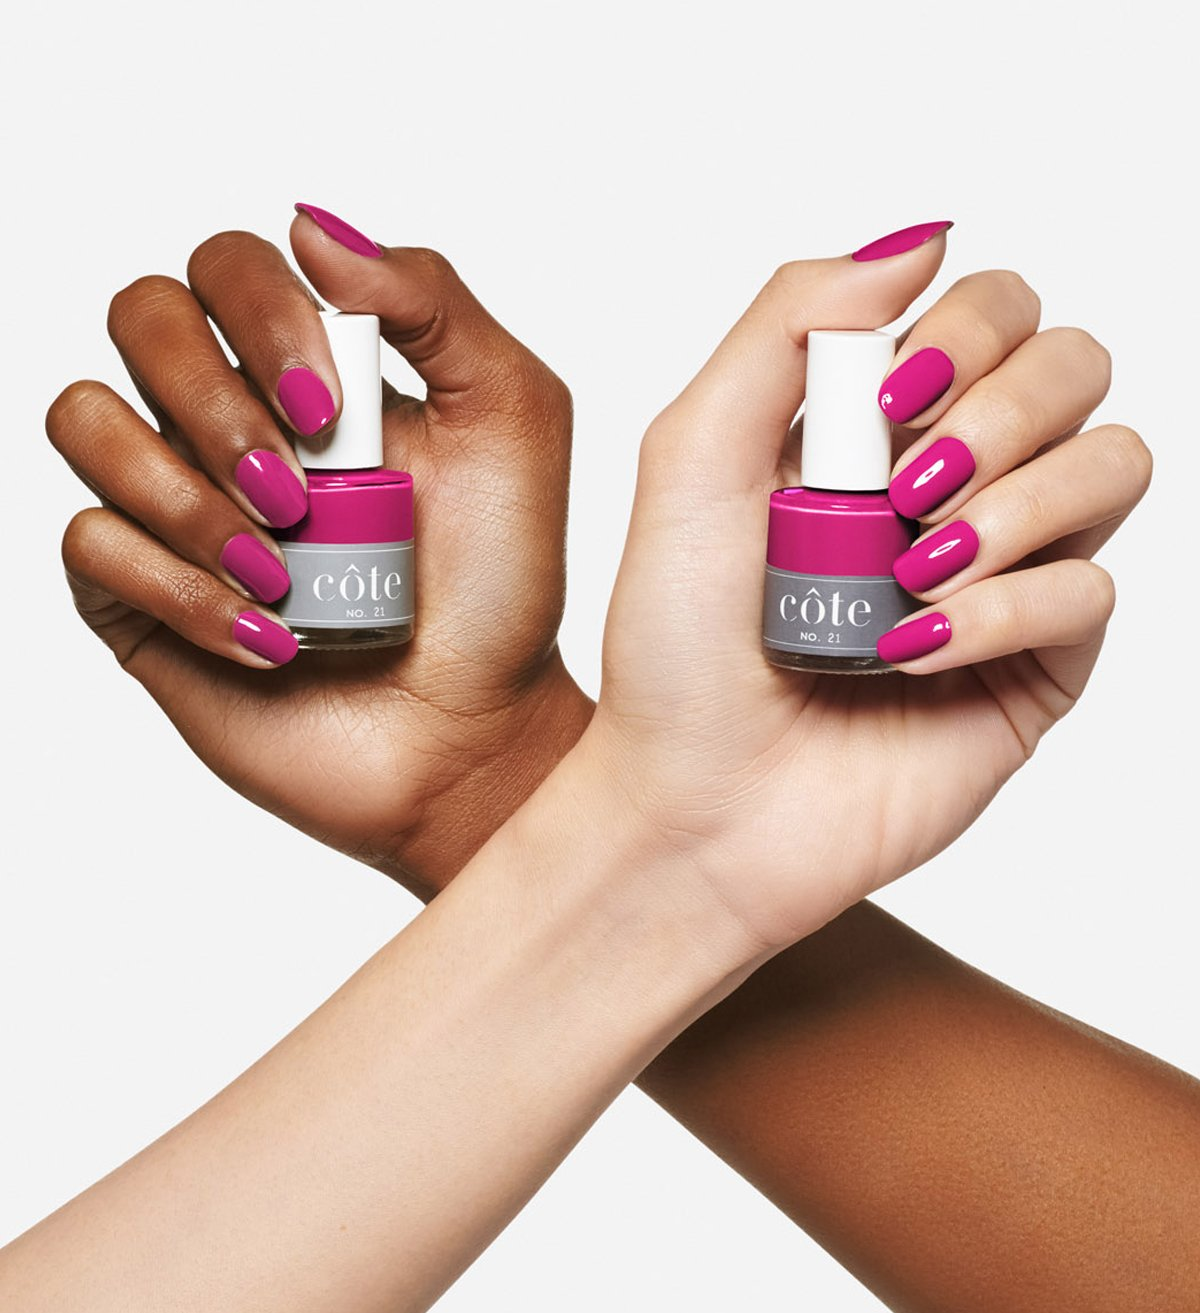 Shop No. 21 Nail Polish by cote - Let's make it a trend #explorebeautiful nailcare and nail polish